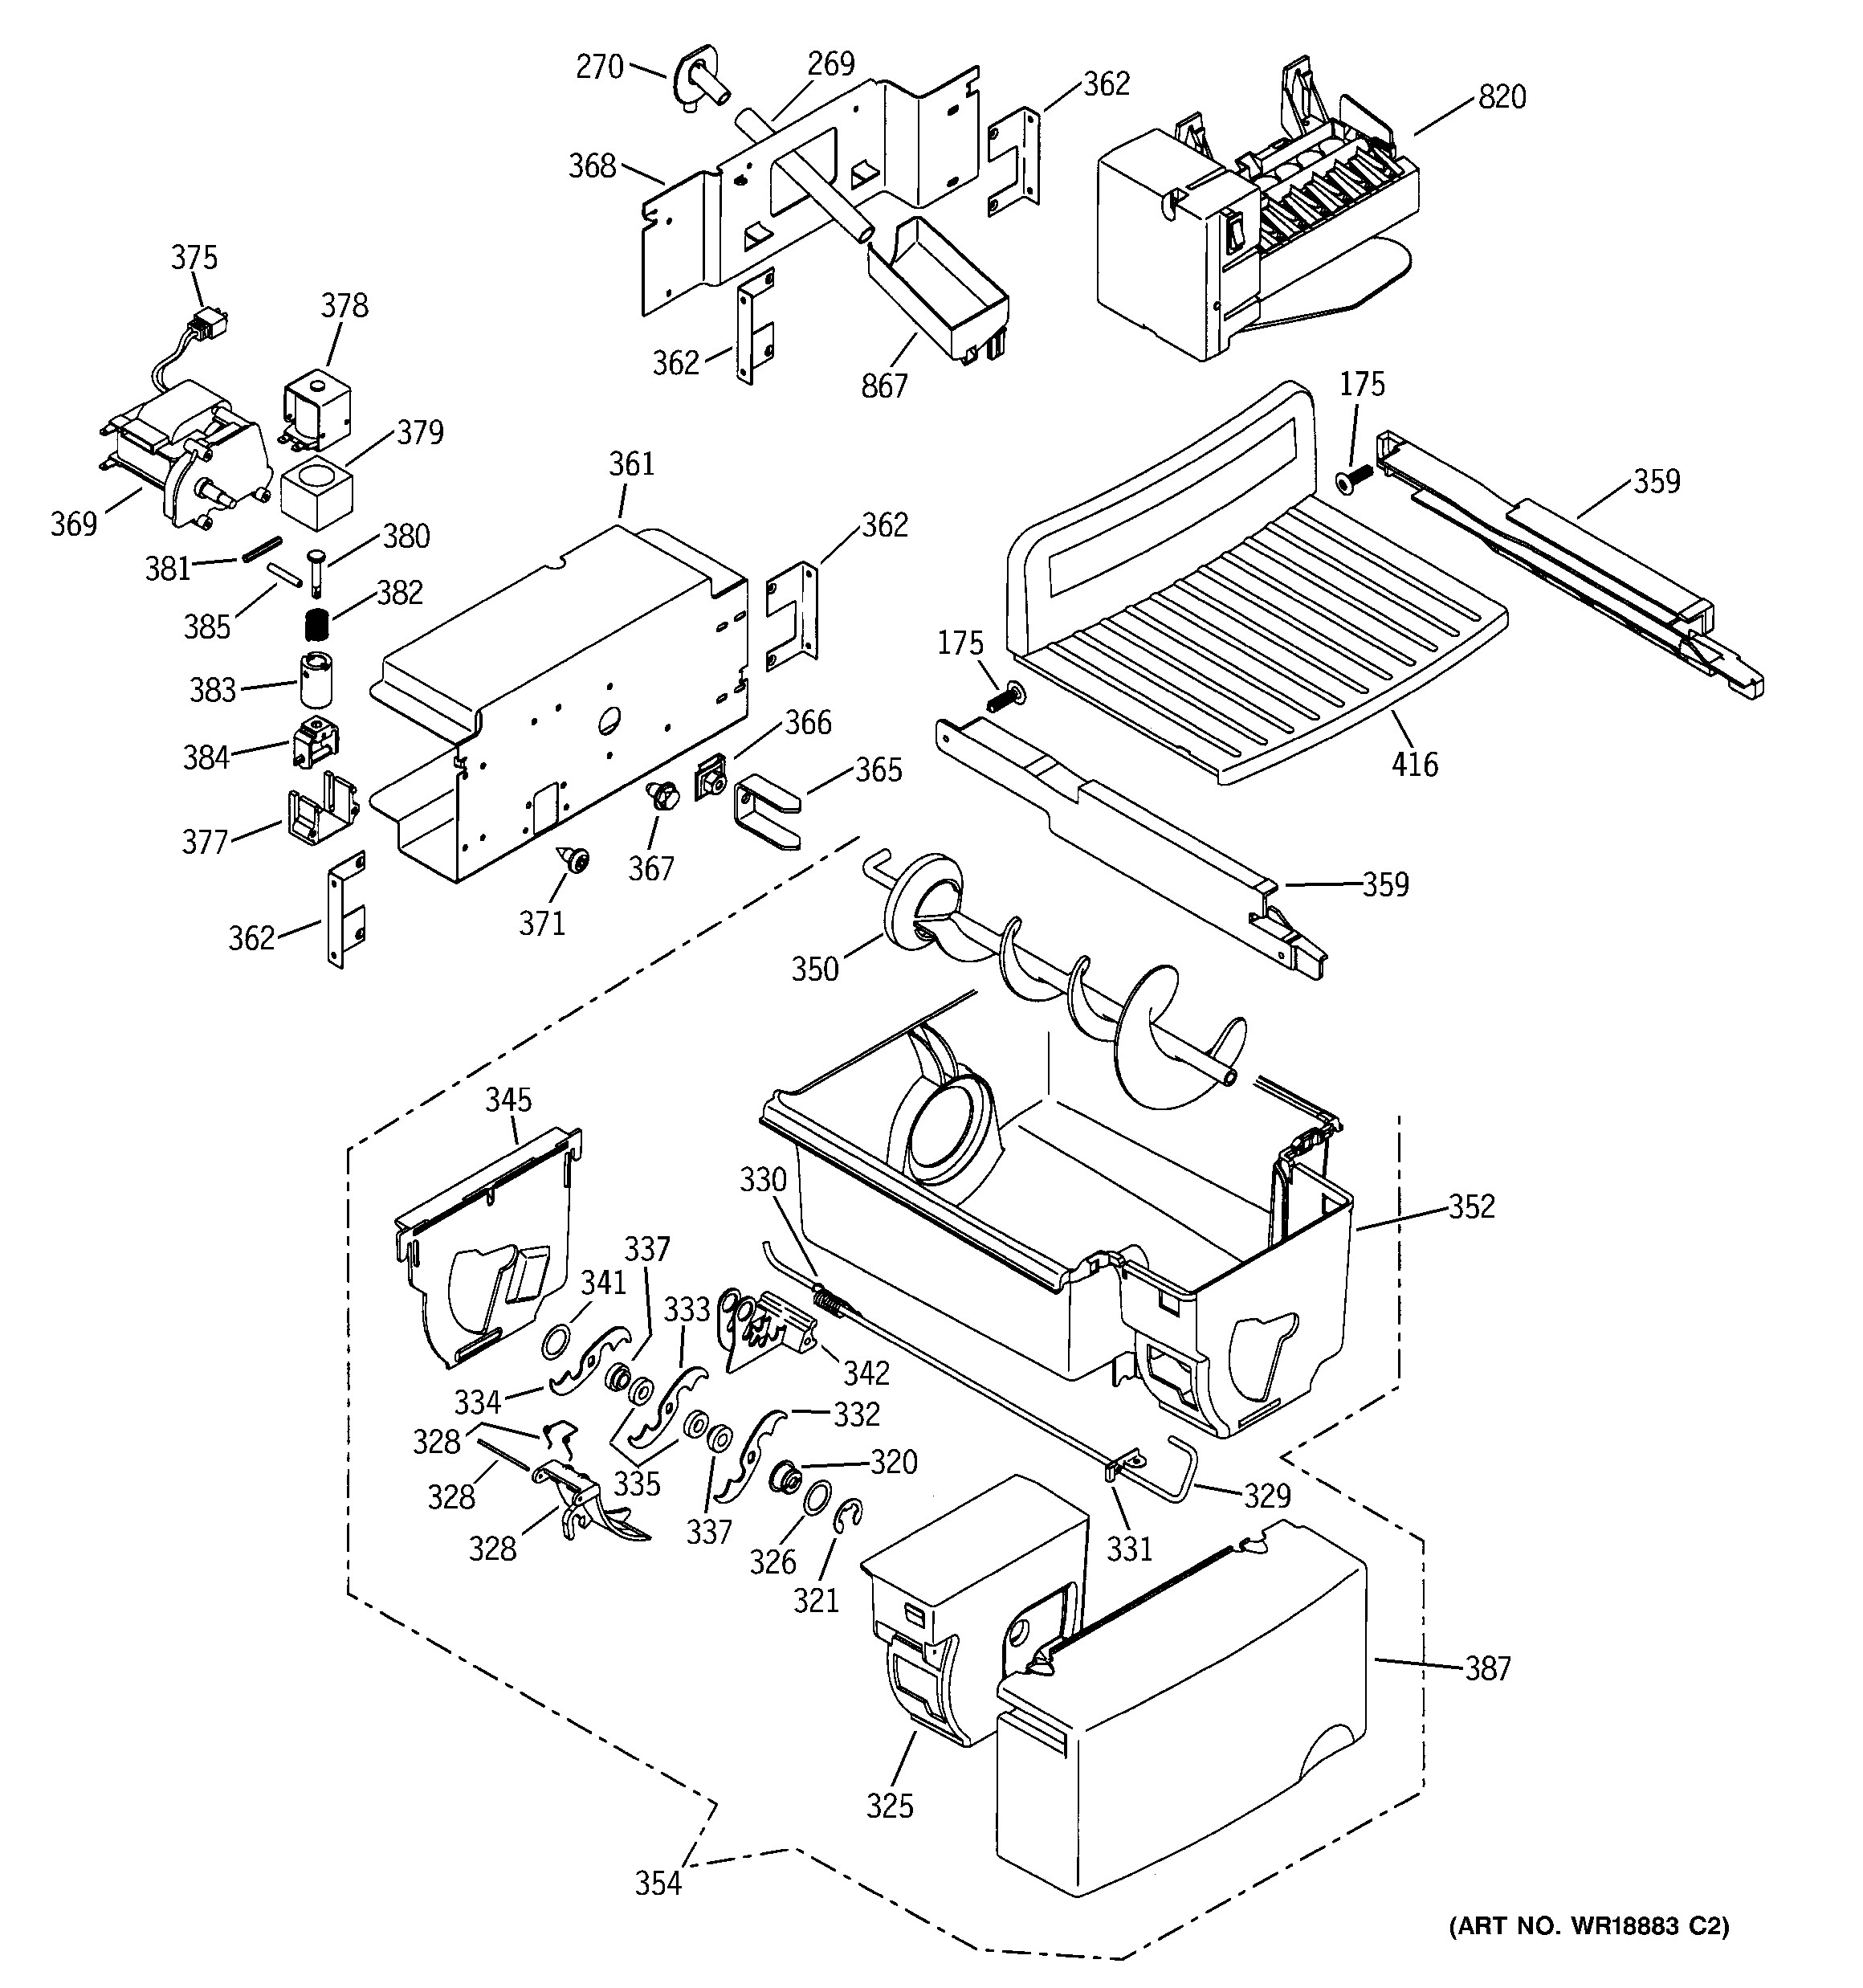 Ge Ice Maker Parts Diagram Ge Turbine Parts Win S Online Of Ge Ice Maker Parts Diagram